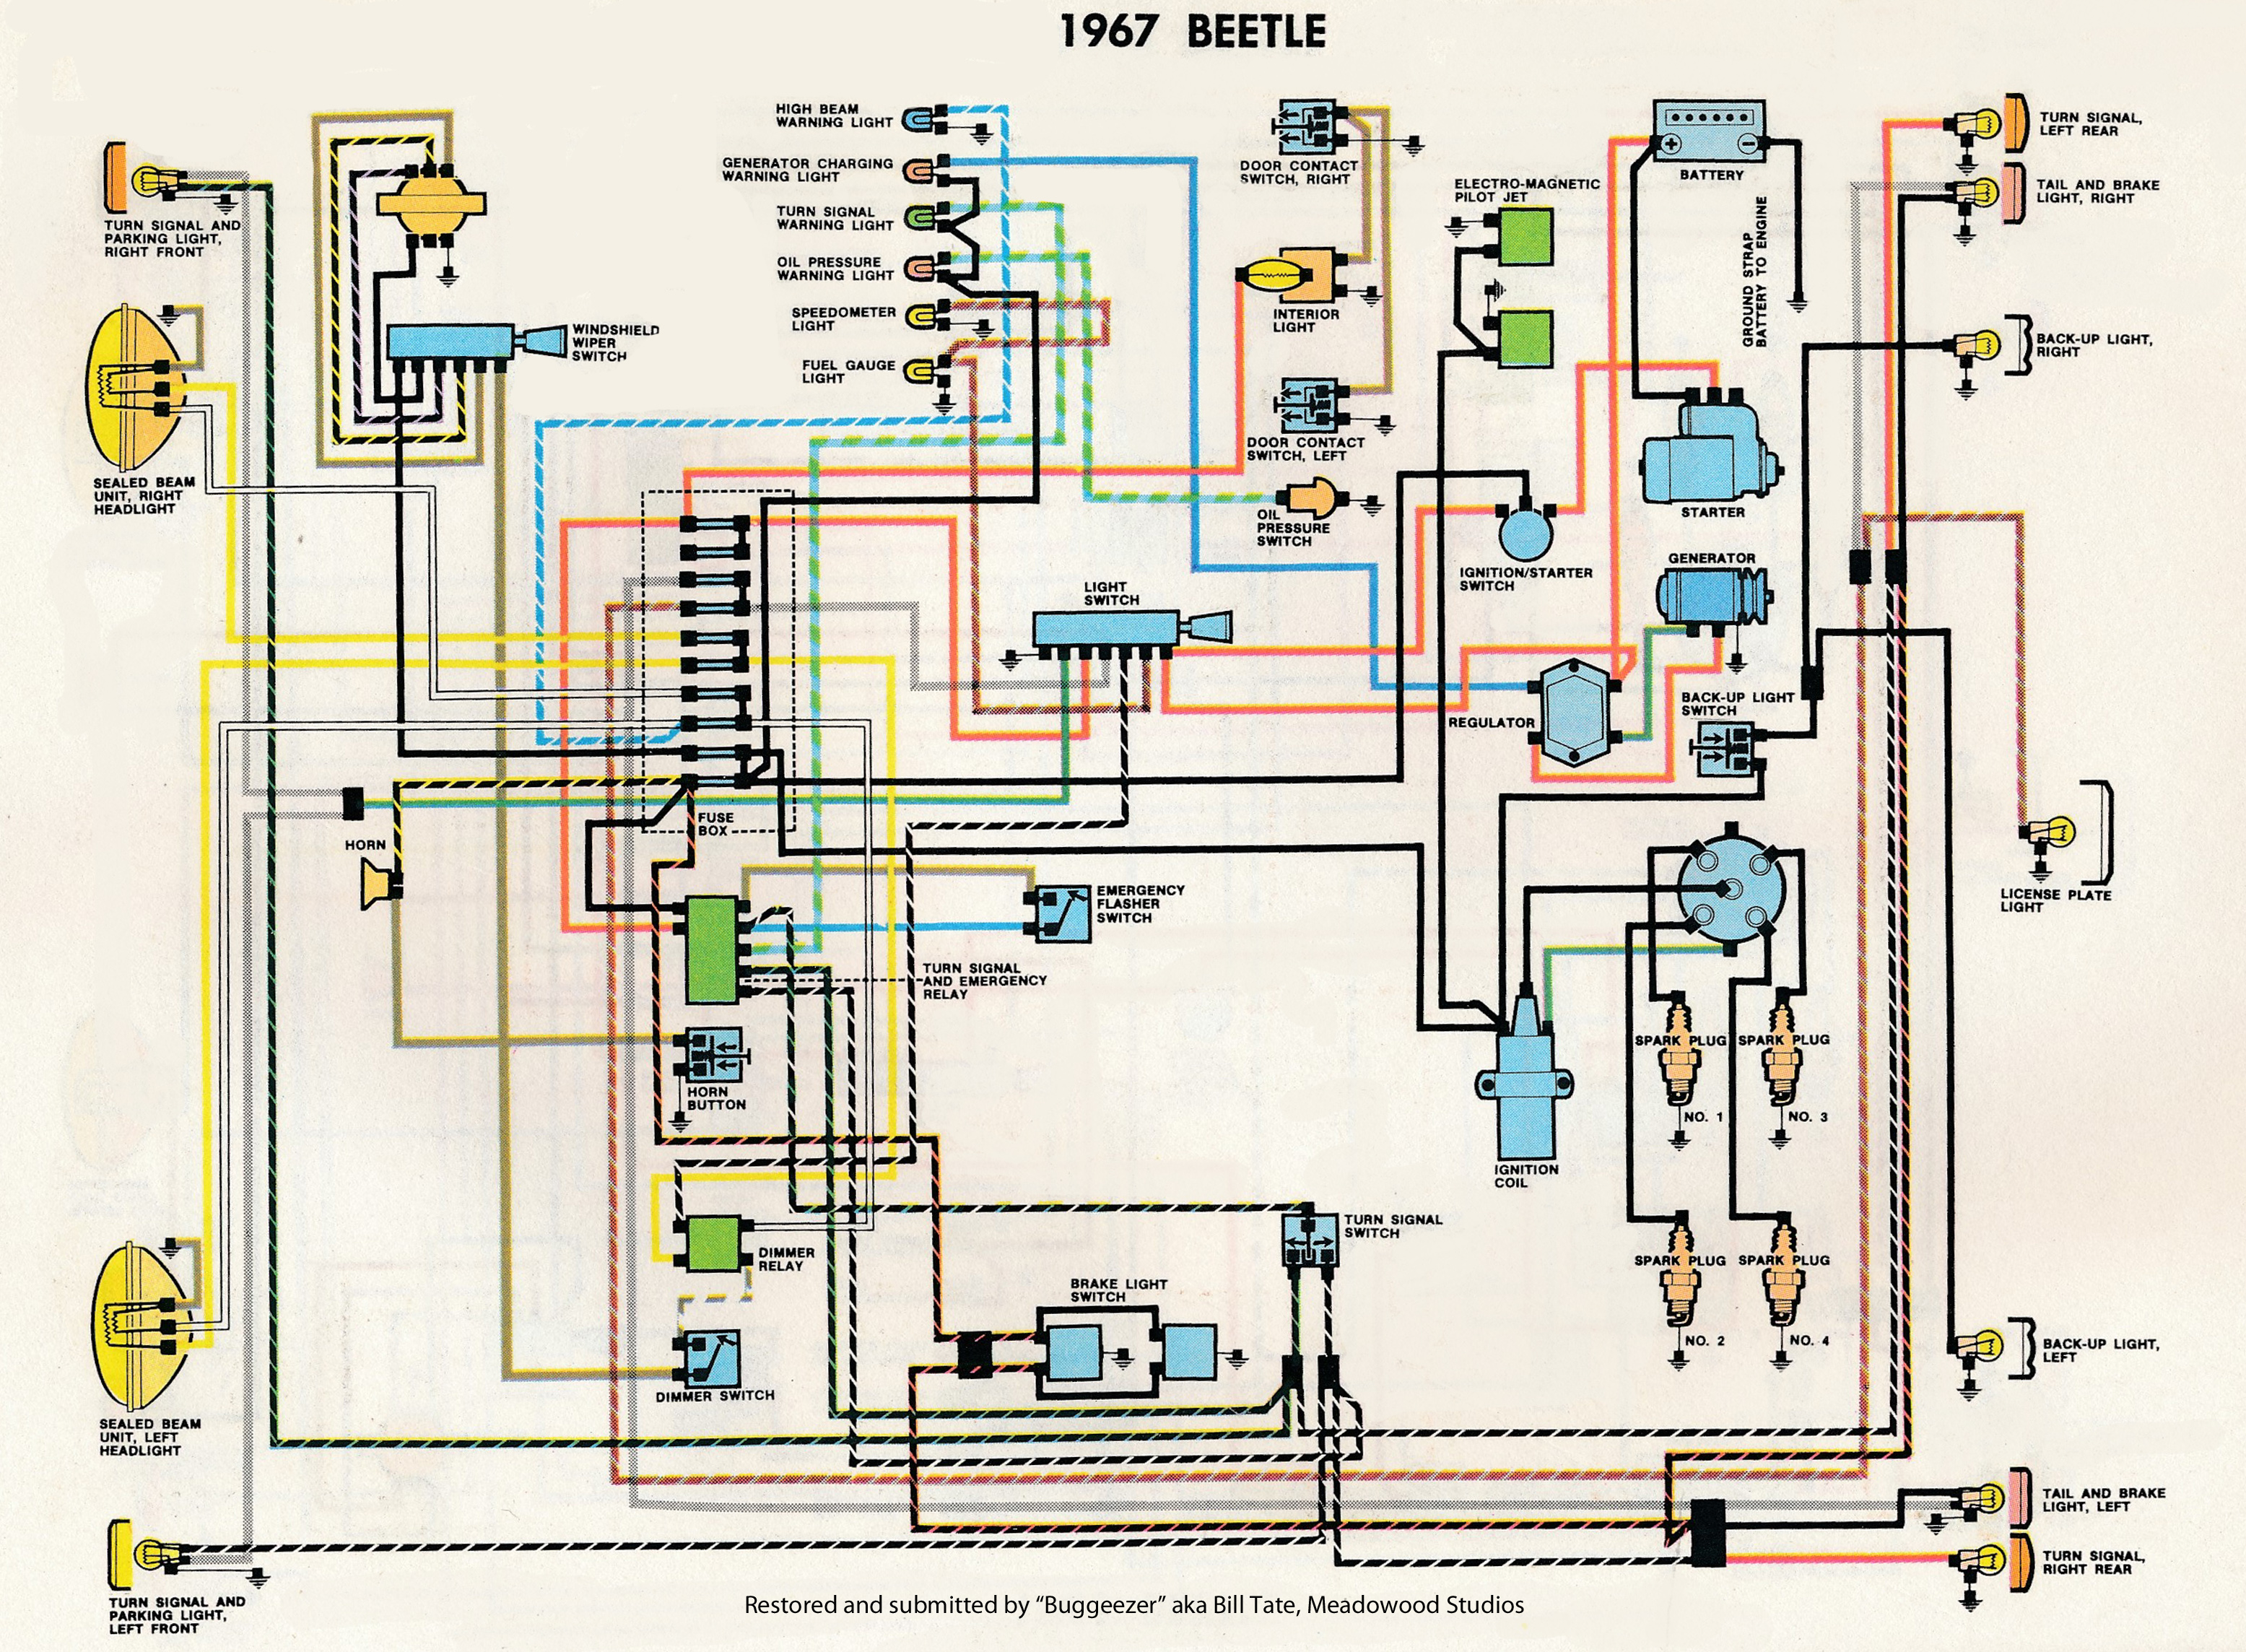 Beetle_1967_Clymers thesamba com type 1 wiring diagrams 1972 beetle wiring diagram at mifinder.co